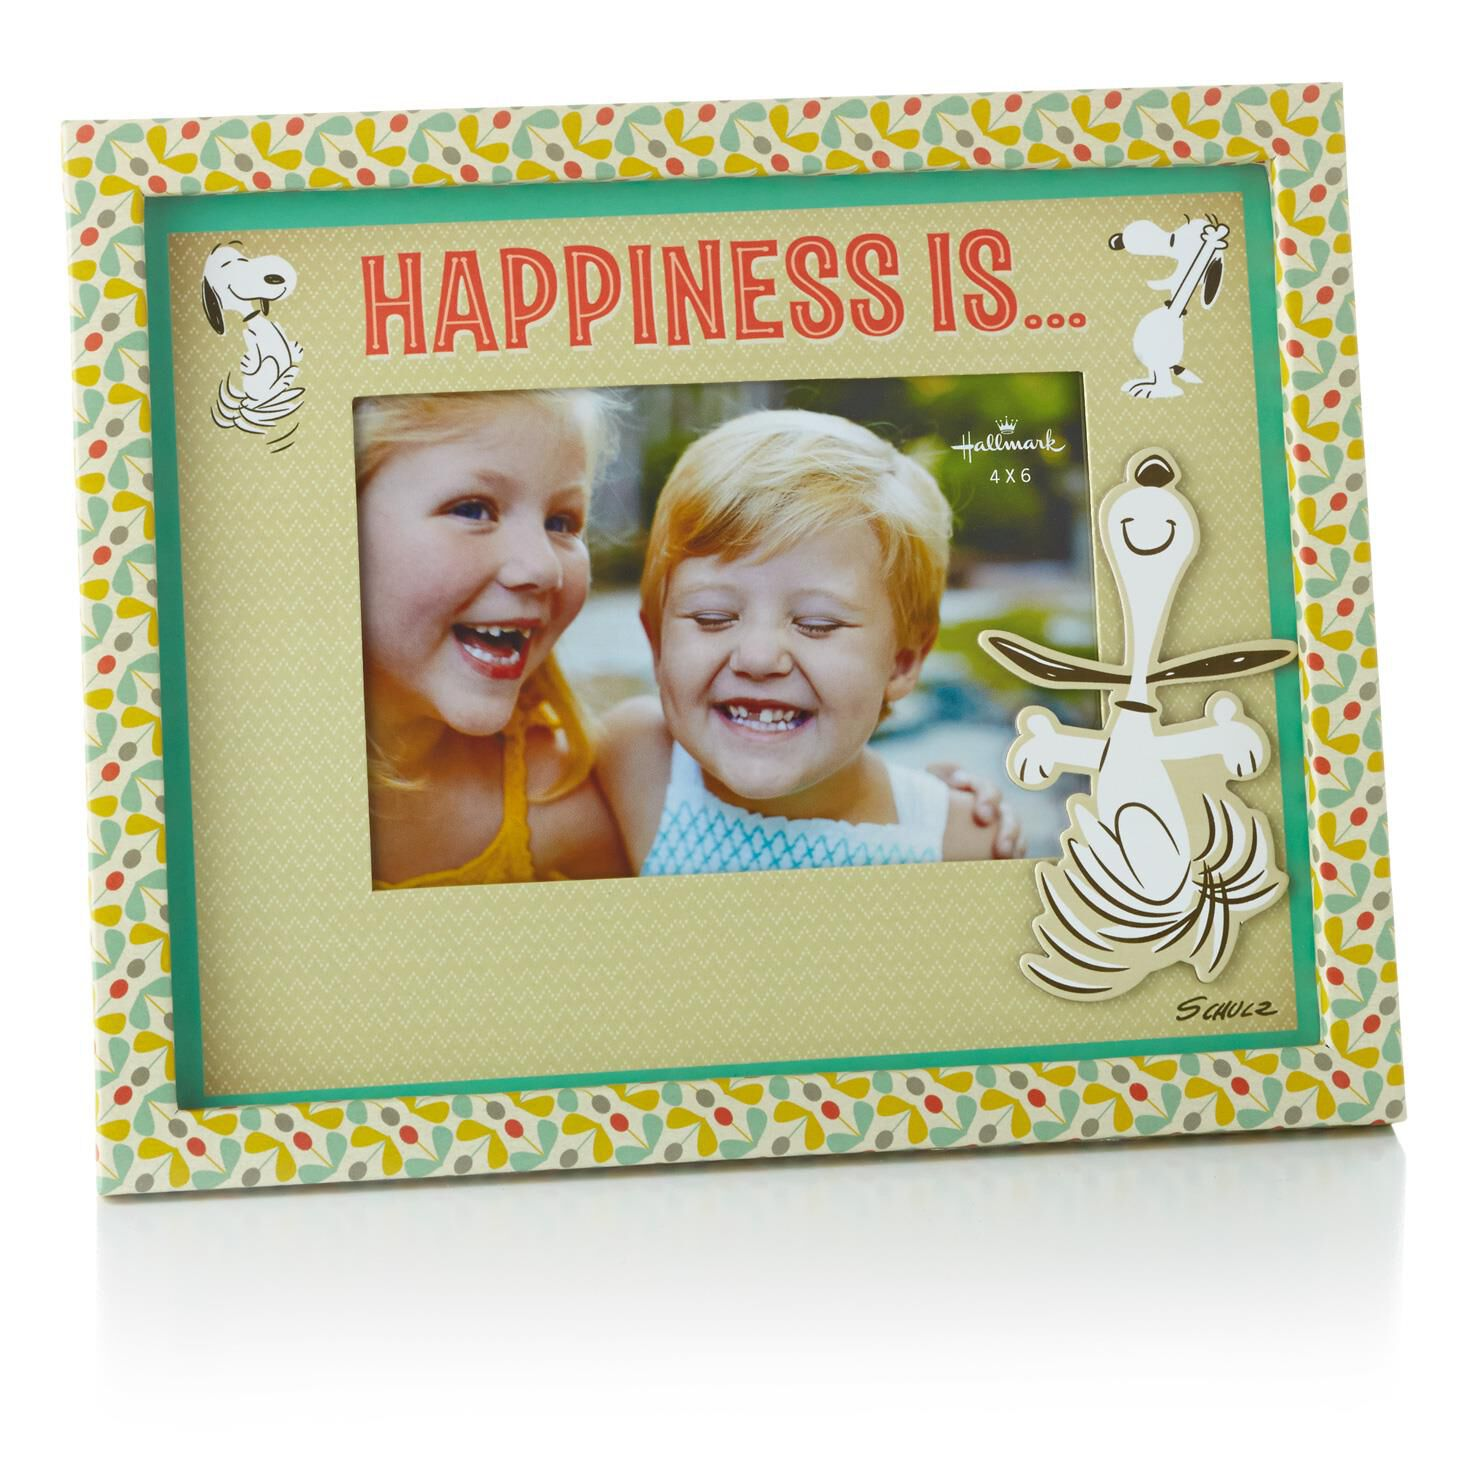 Happiness is picture frame 4x6 picture frames hallmark jeuxipadfo Gallery